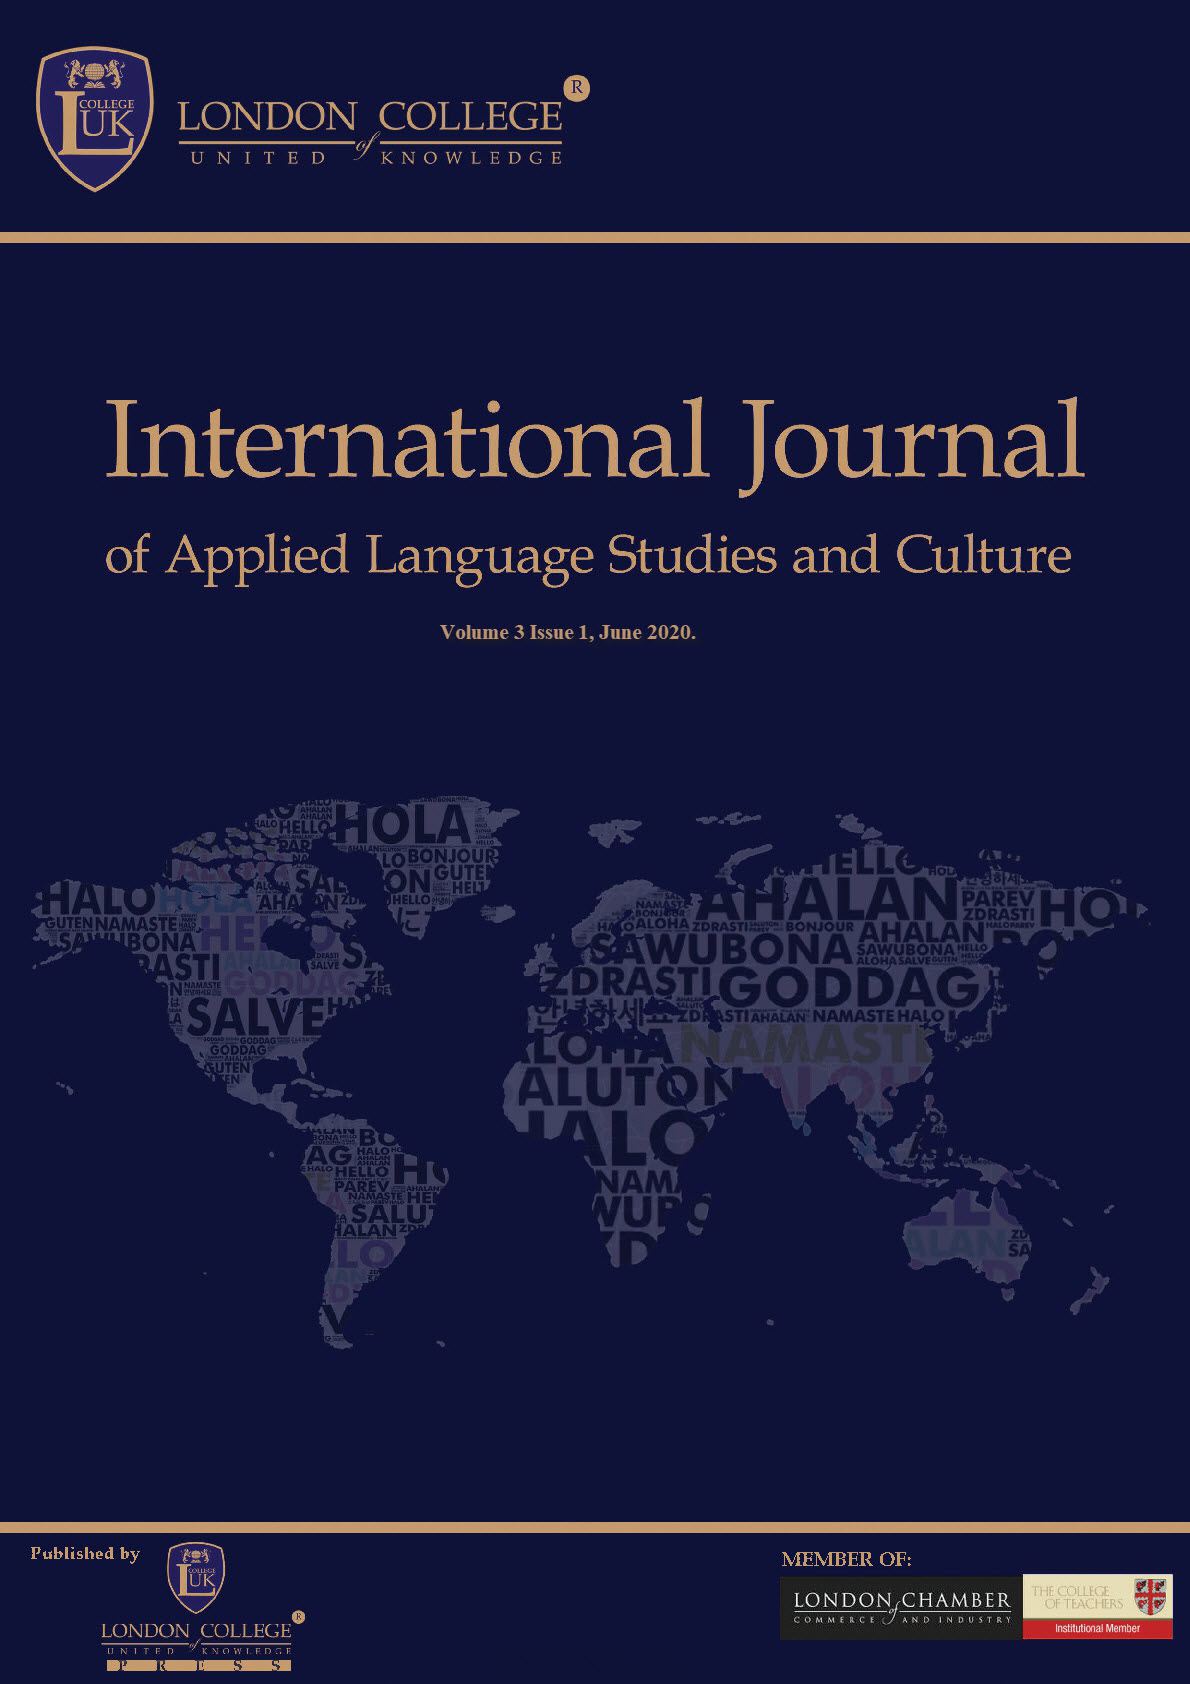 View Vol. 3 No. 1 (2020): THE INTERNATIONAL JOURNAL OF APPLIED LANGUAGE STUDIES AND CULTURE (IJALSC)